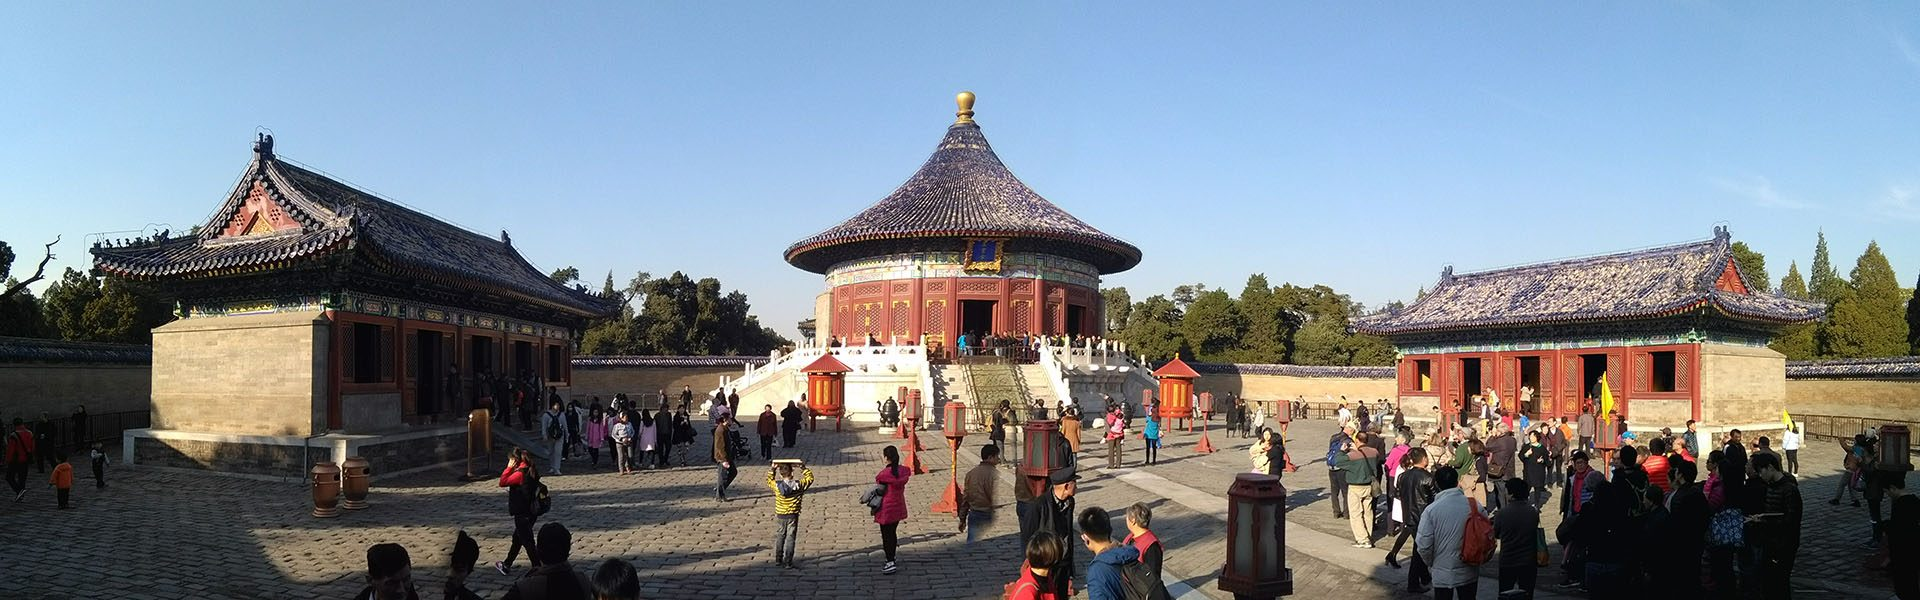 A panarama of the temple of heaven in Beijing